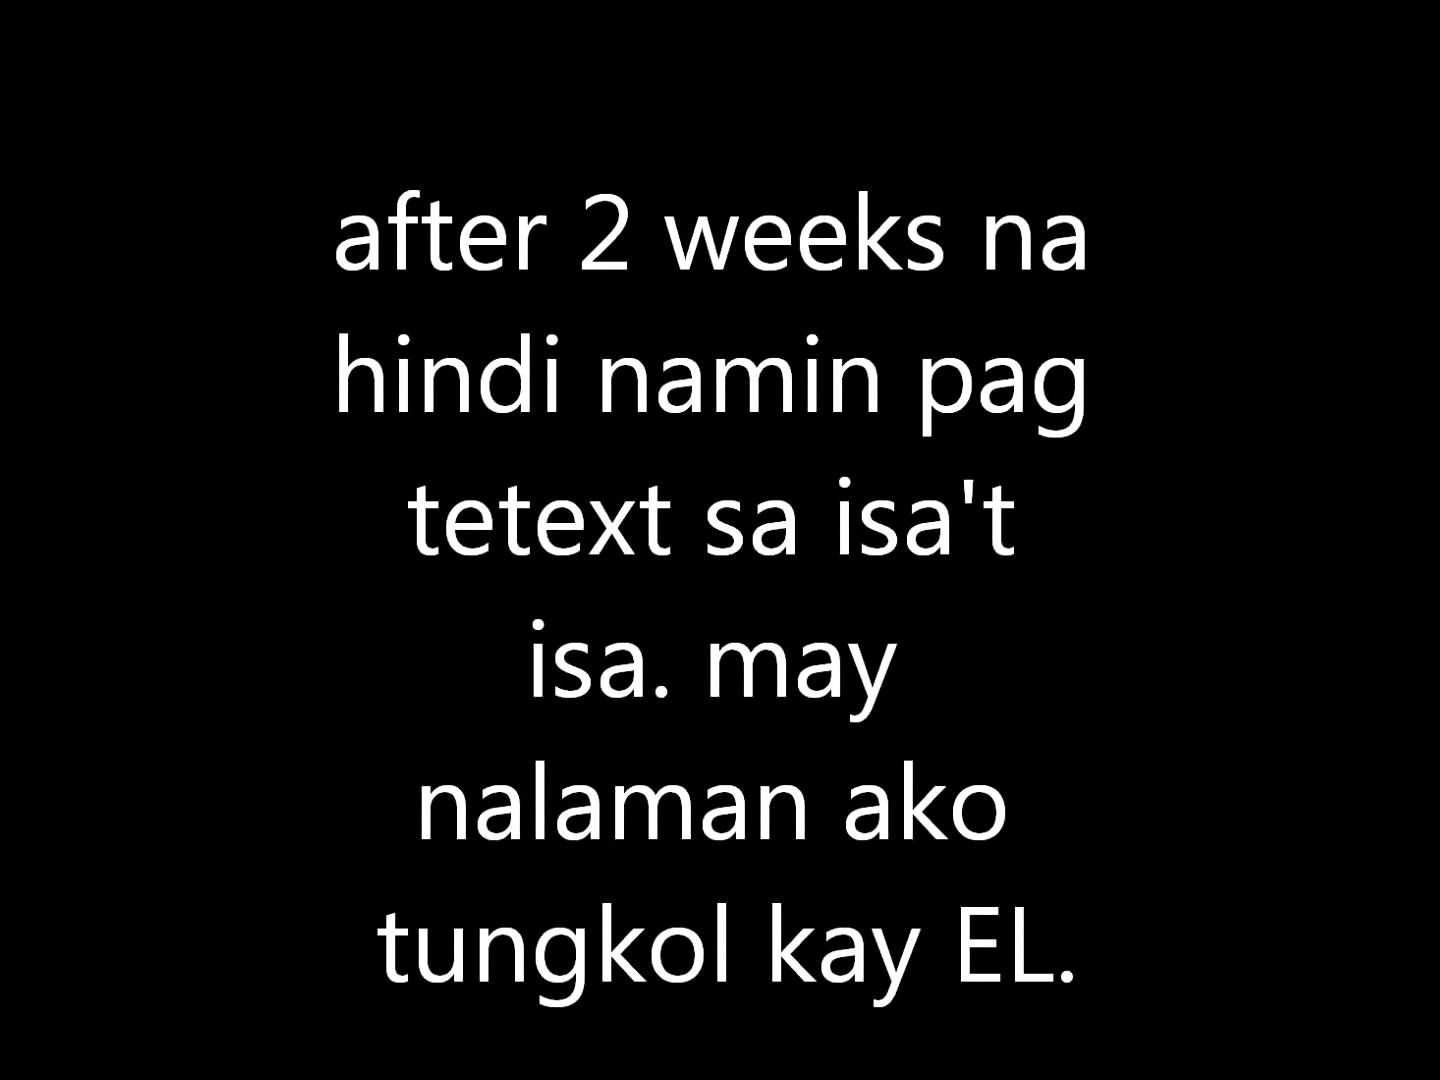 Tagalog Quotes Love Quotes Tagalog Short Story Ywatn4Ul5  In Love Quotes  Pinterest